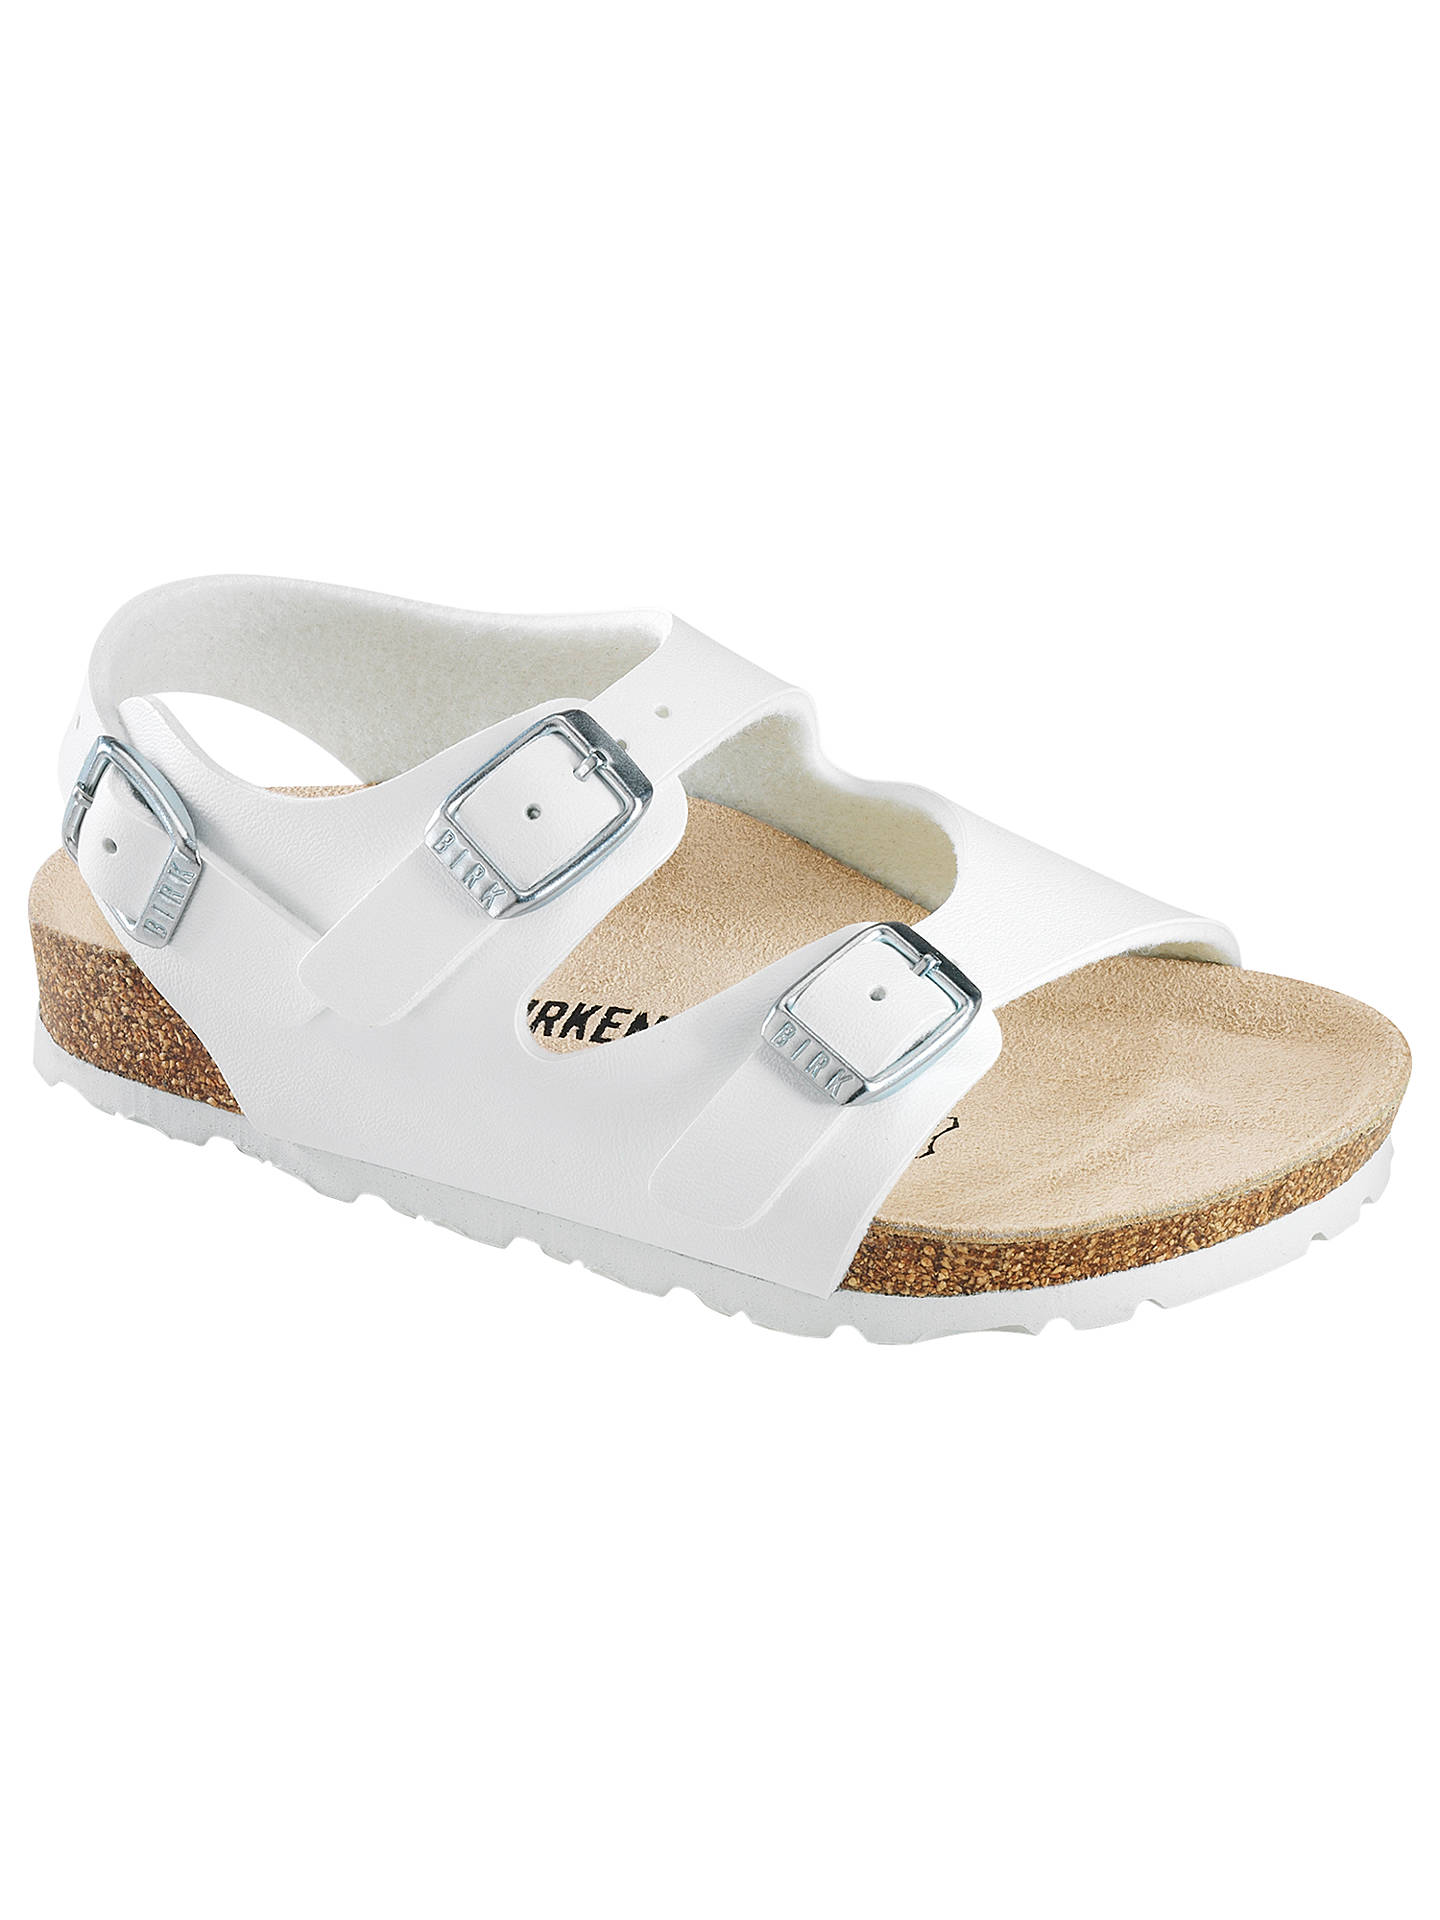 Birkenstock Roma Sandals at John Lewis   Partners 27cb5cfedab